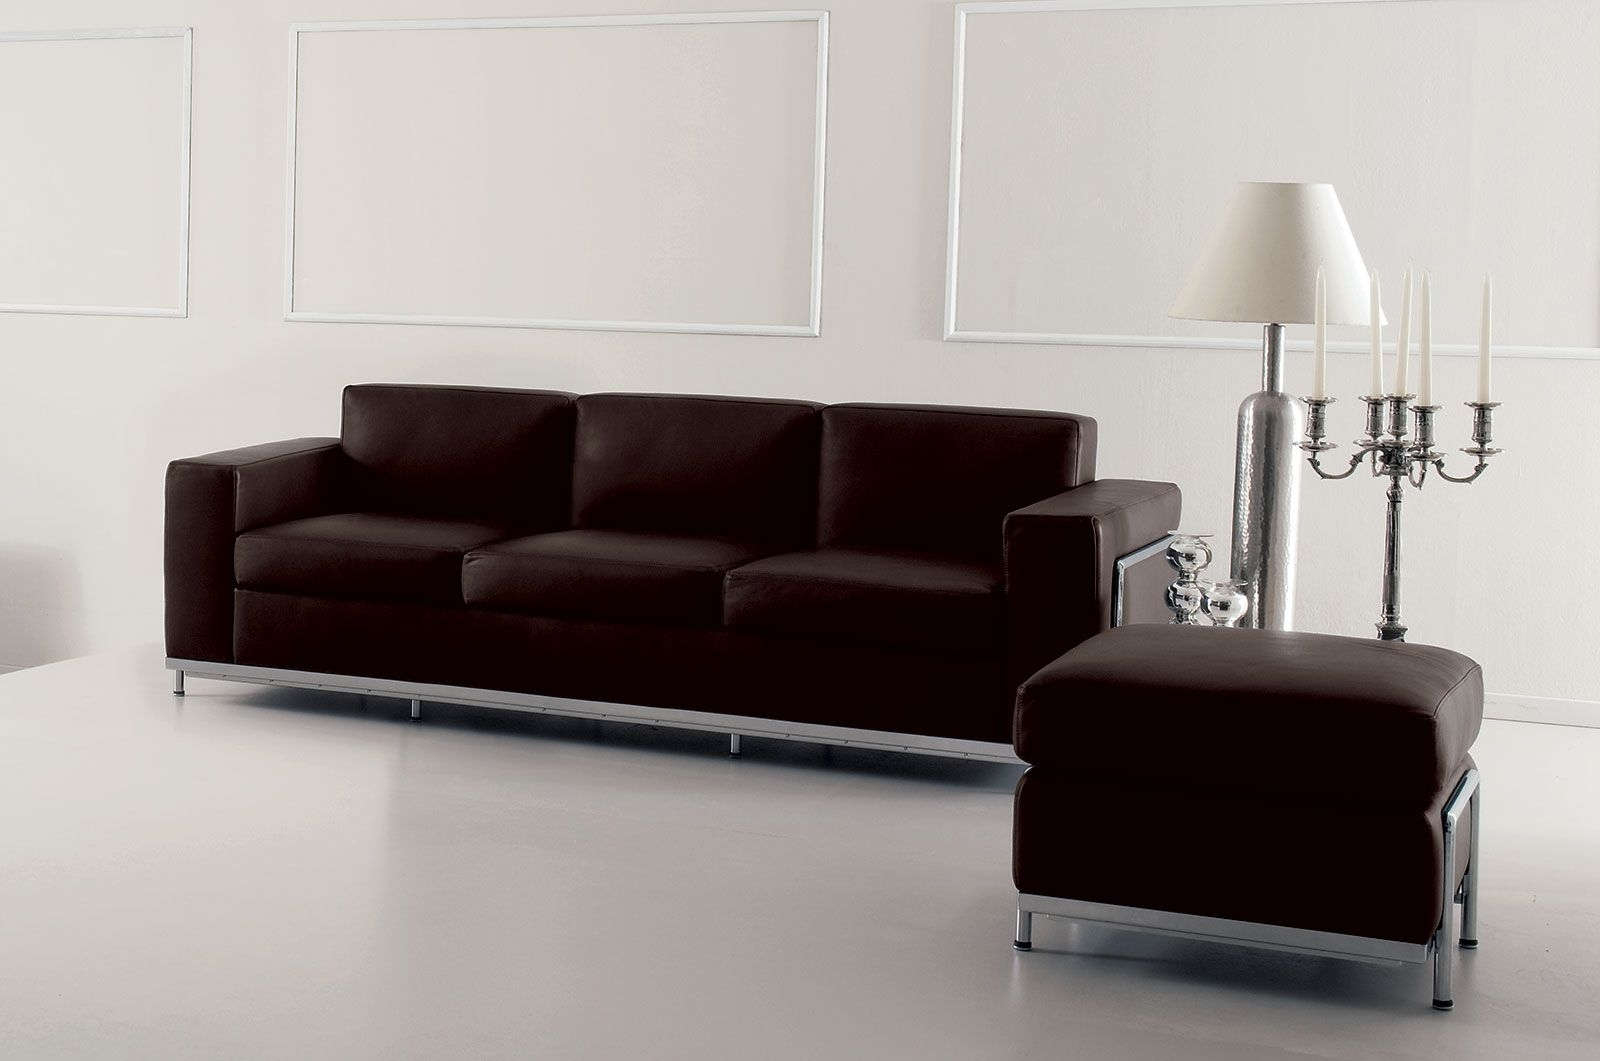 Hawaii, Leather Sofas And With Regard To Current Hawaii Sectional Sofas (View 9 of 15)